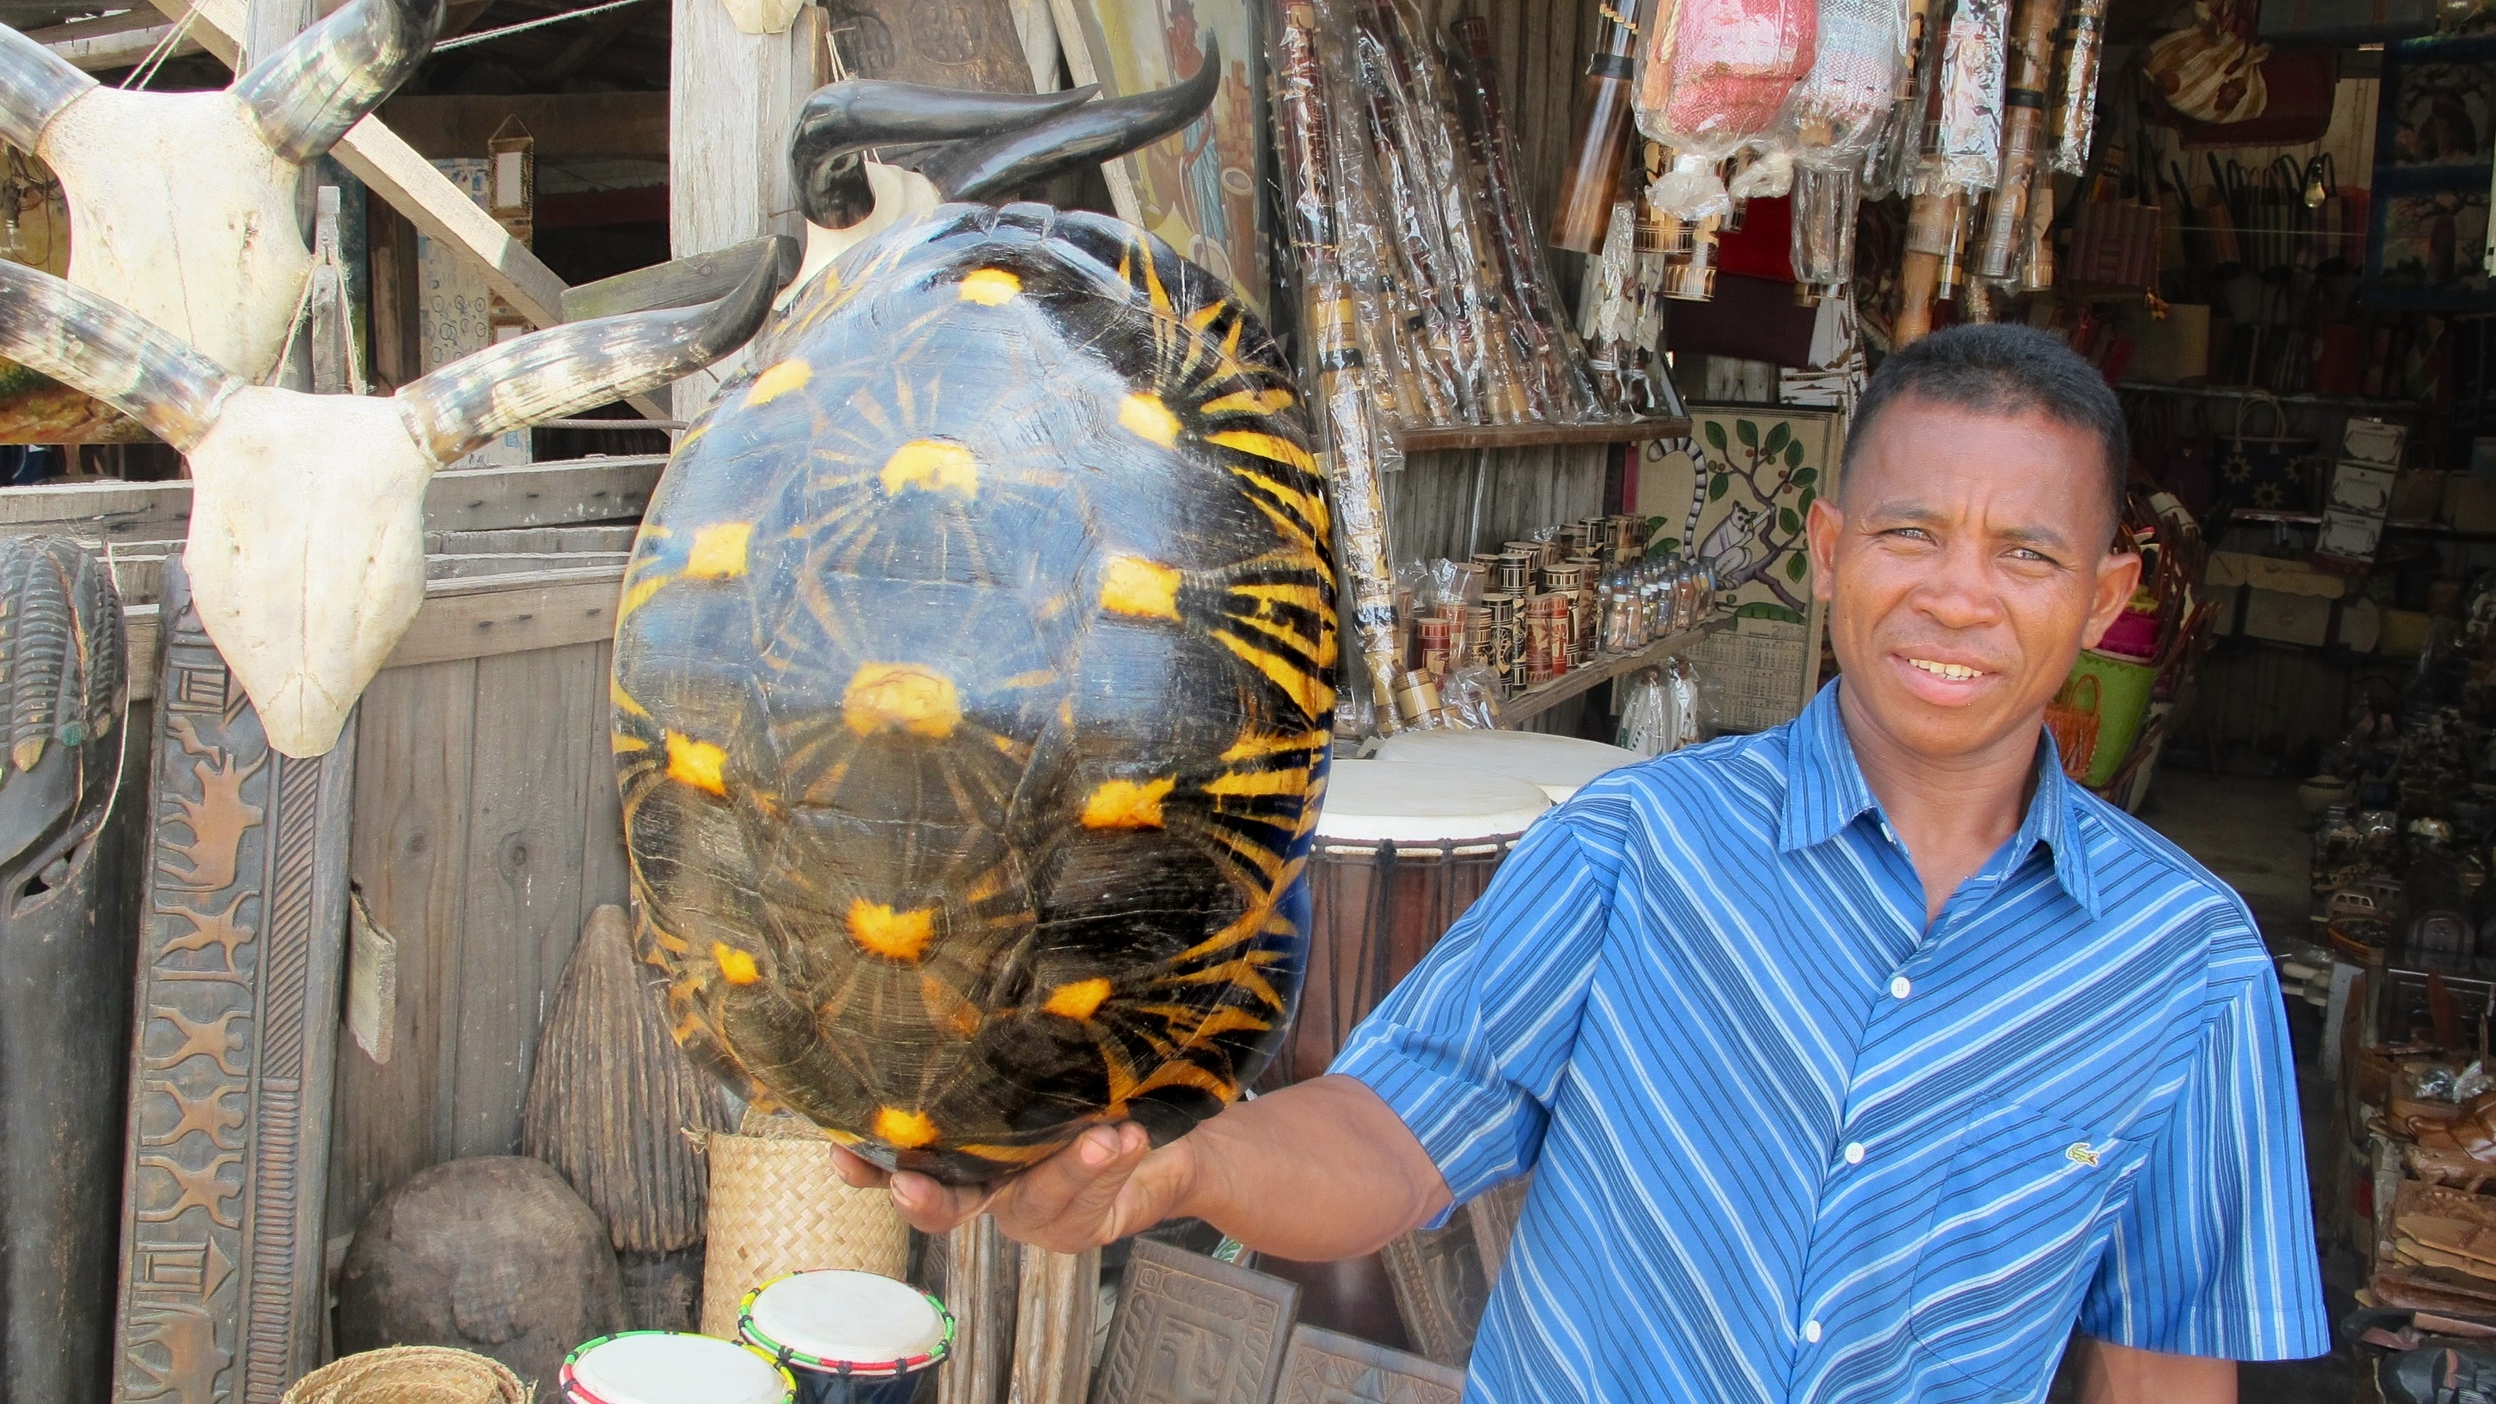 The shell of a Critically Endangered Radiated Tortoise for sale in a tourist market in Antananarivo.